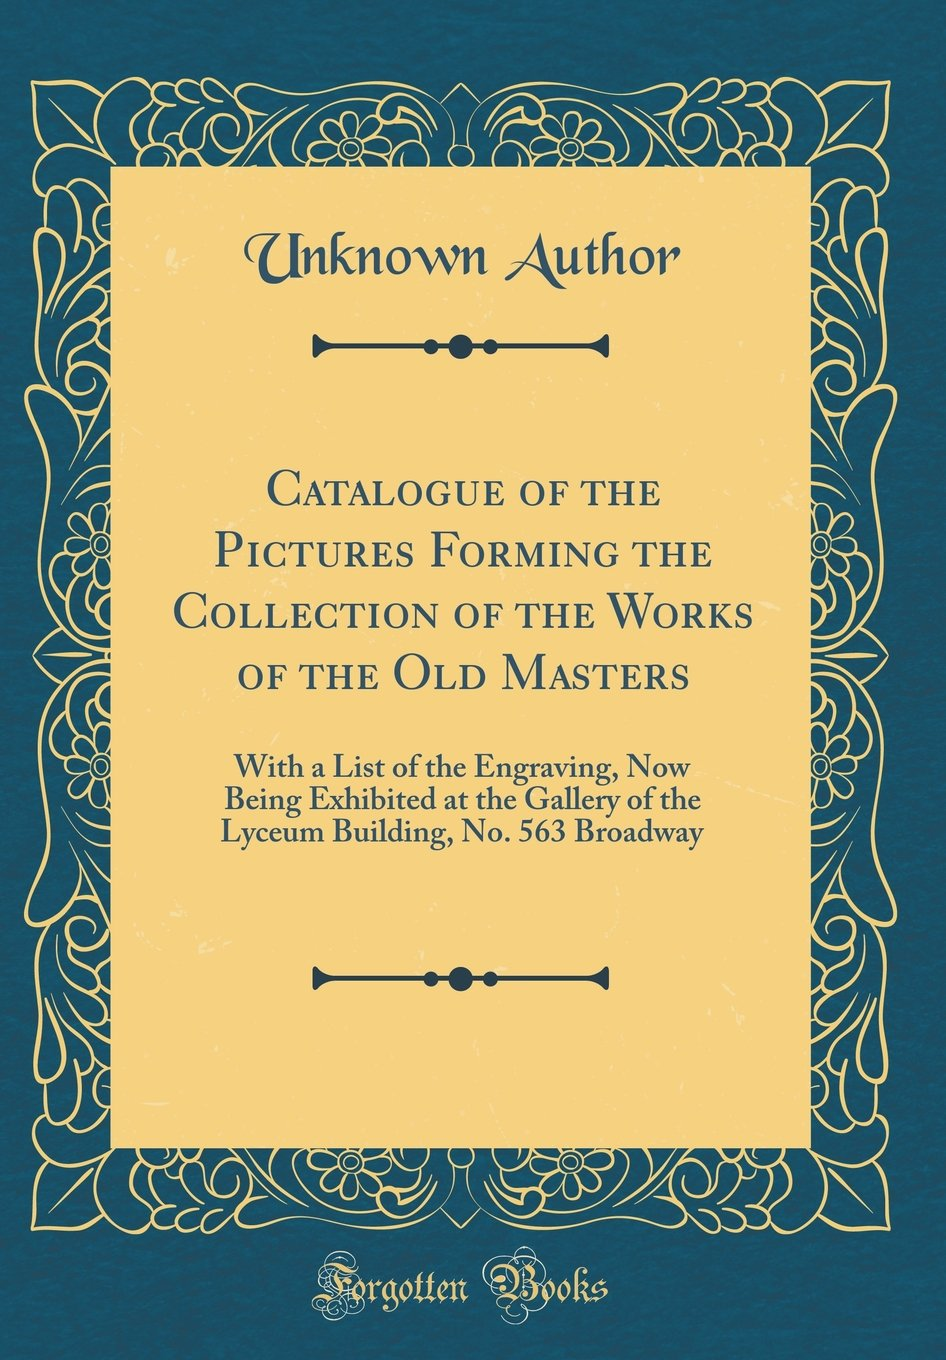 Catalogue of the Pictures Forming the Collection of the Works of the Old Masters: With a List of the Engraving, Now Being Exhibited at the Gallery of ... Building, No. 563 Broadway (Classic Reprint) pdf epub